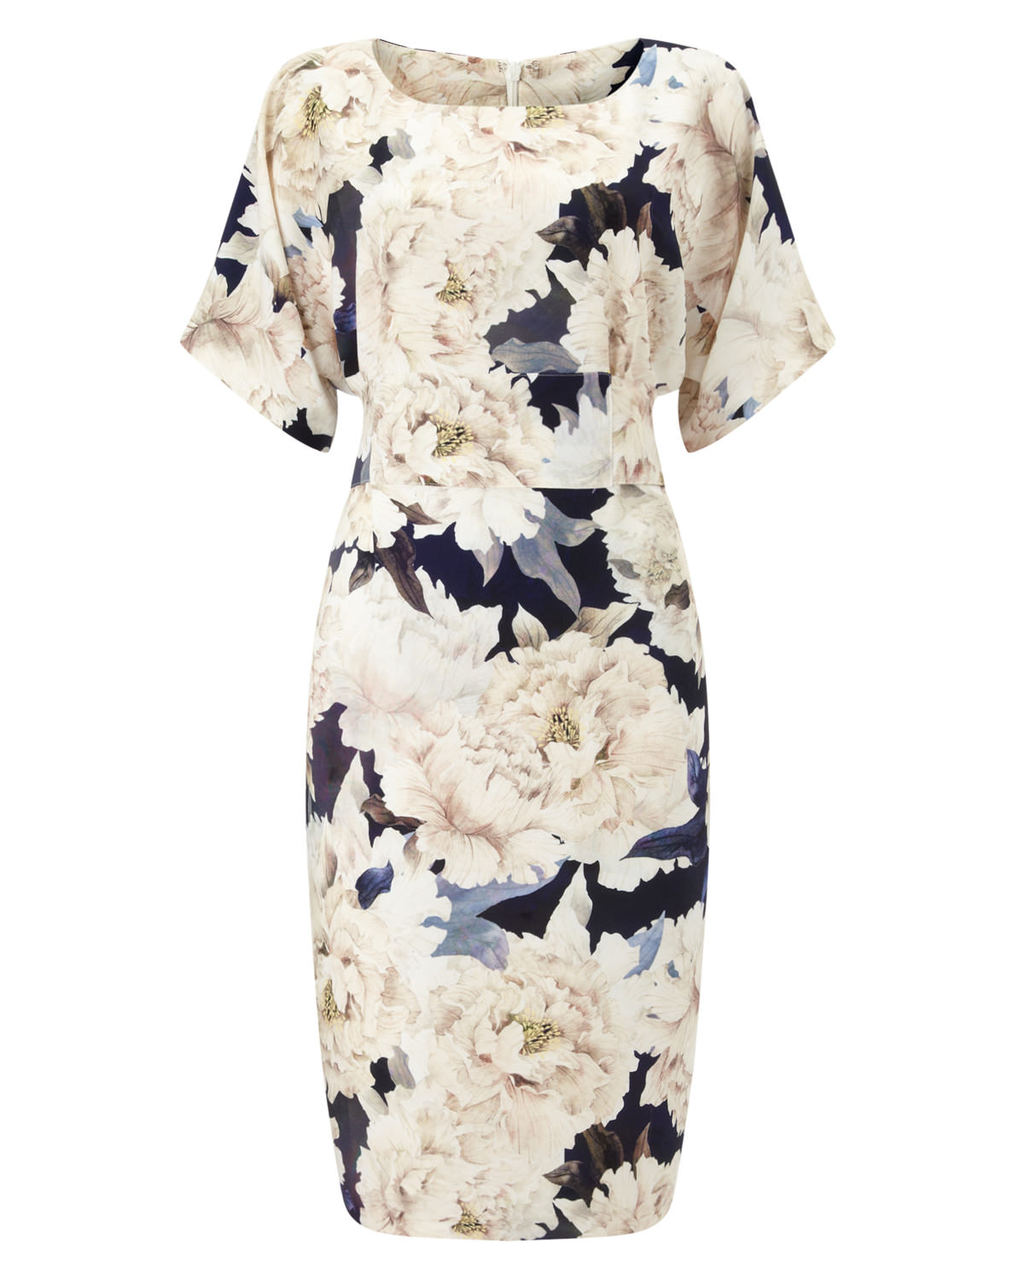 Peony Floral Dress - style: shift; neckline: round neck; fit: tailored/fitted; back detail: tie detail at back; predominant colour: ivory/cream; secondary colour: navy; length: on the knee; fibres: polyester/polyamide - 100%; occasions: occasion; sleeve length: half sleeve; sleeve style: standard; pattern type: fabric; pattern size: big & busy; pattern: florals; texture group: other - light to midweight; multicoloured: multicoloured; season: a/w 2015